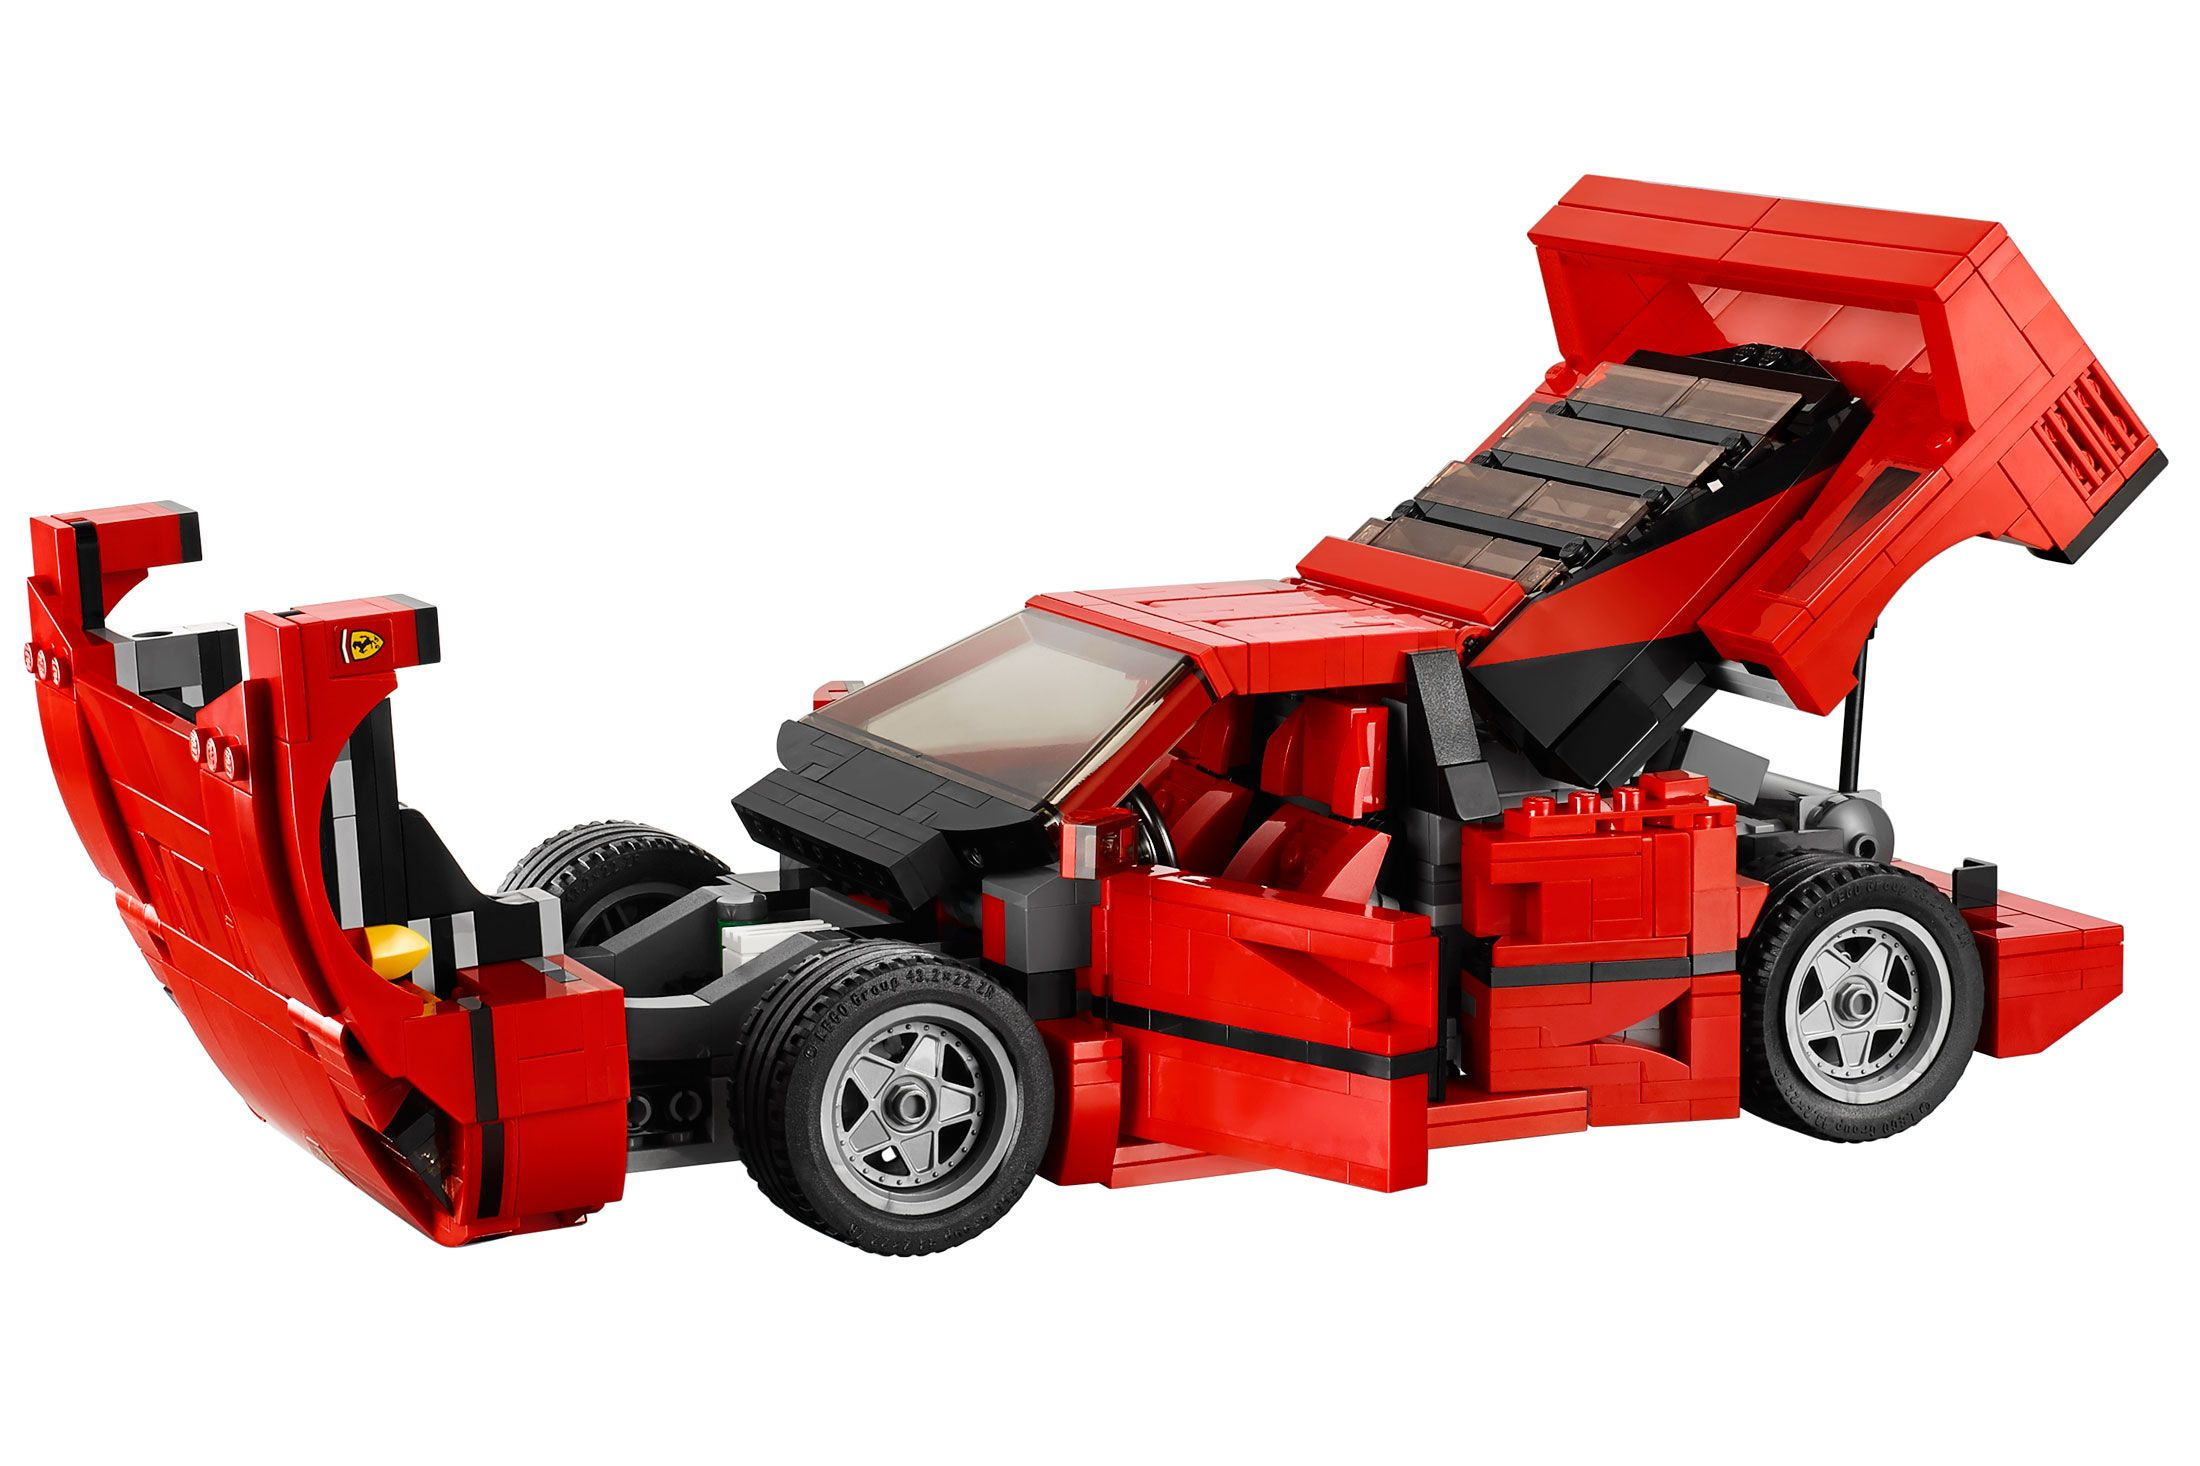 build your own ferrari f40 for only $90 | ferrari f40, legos and lego